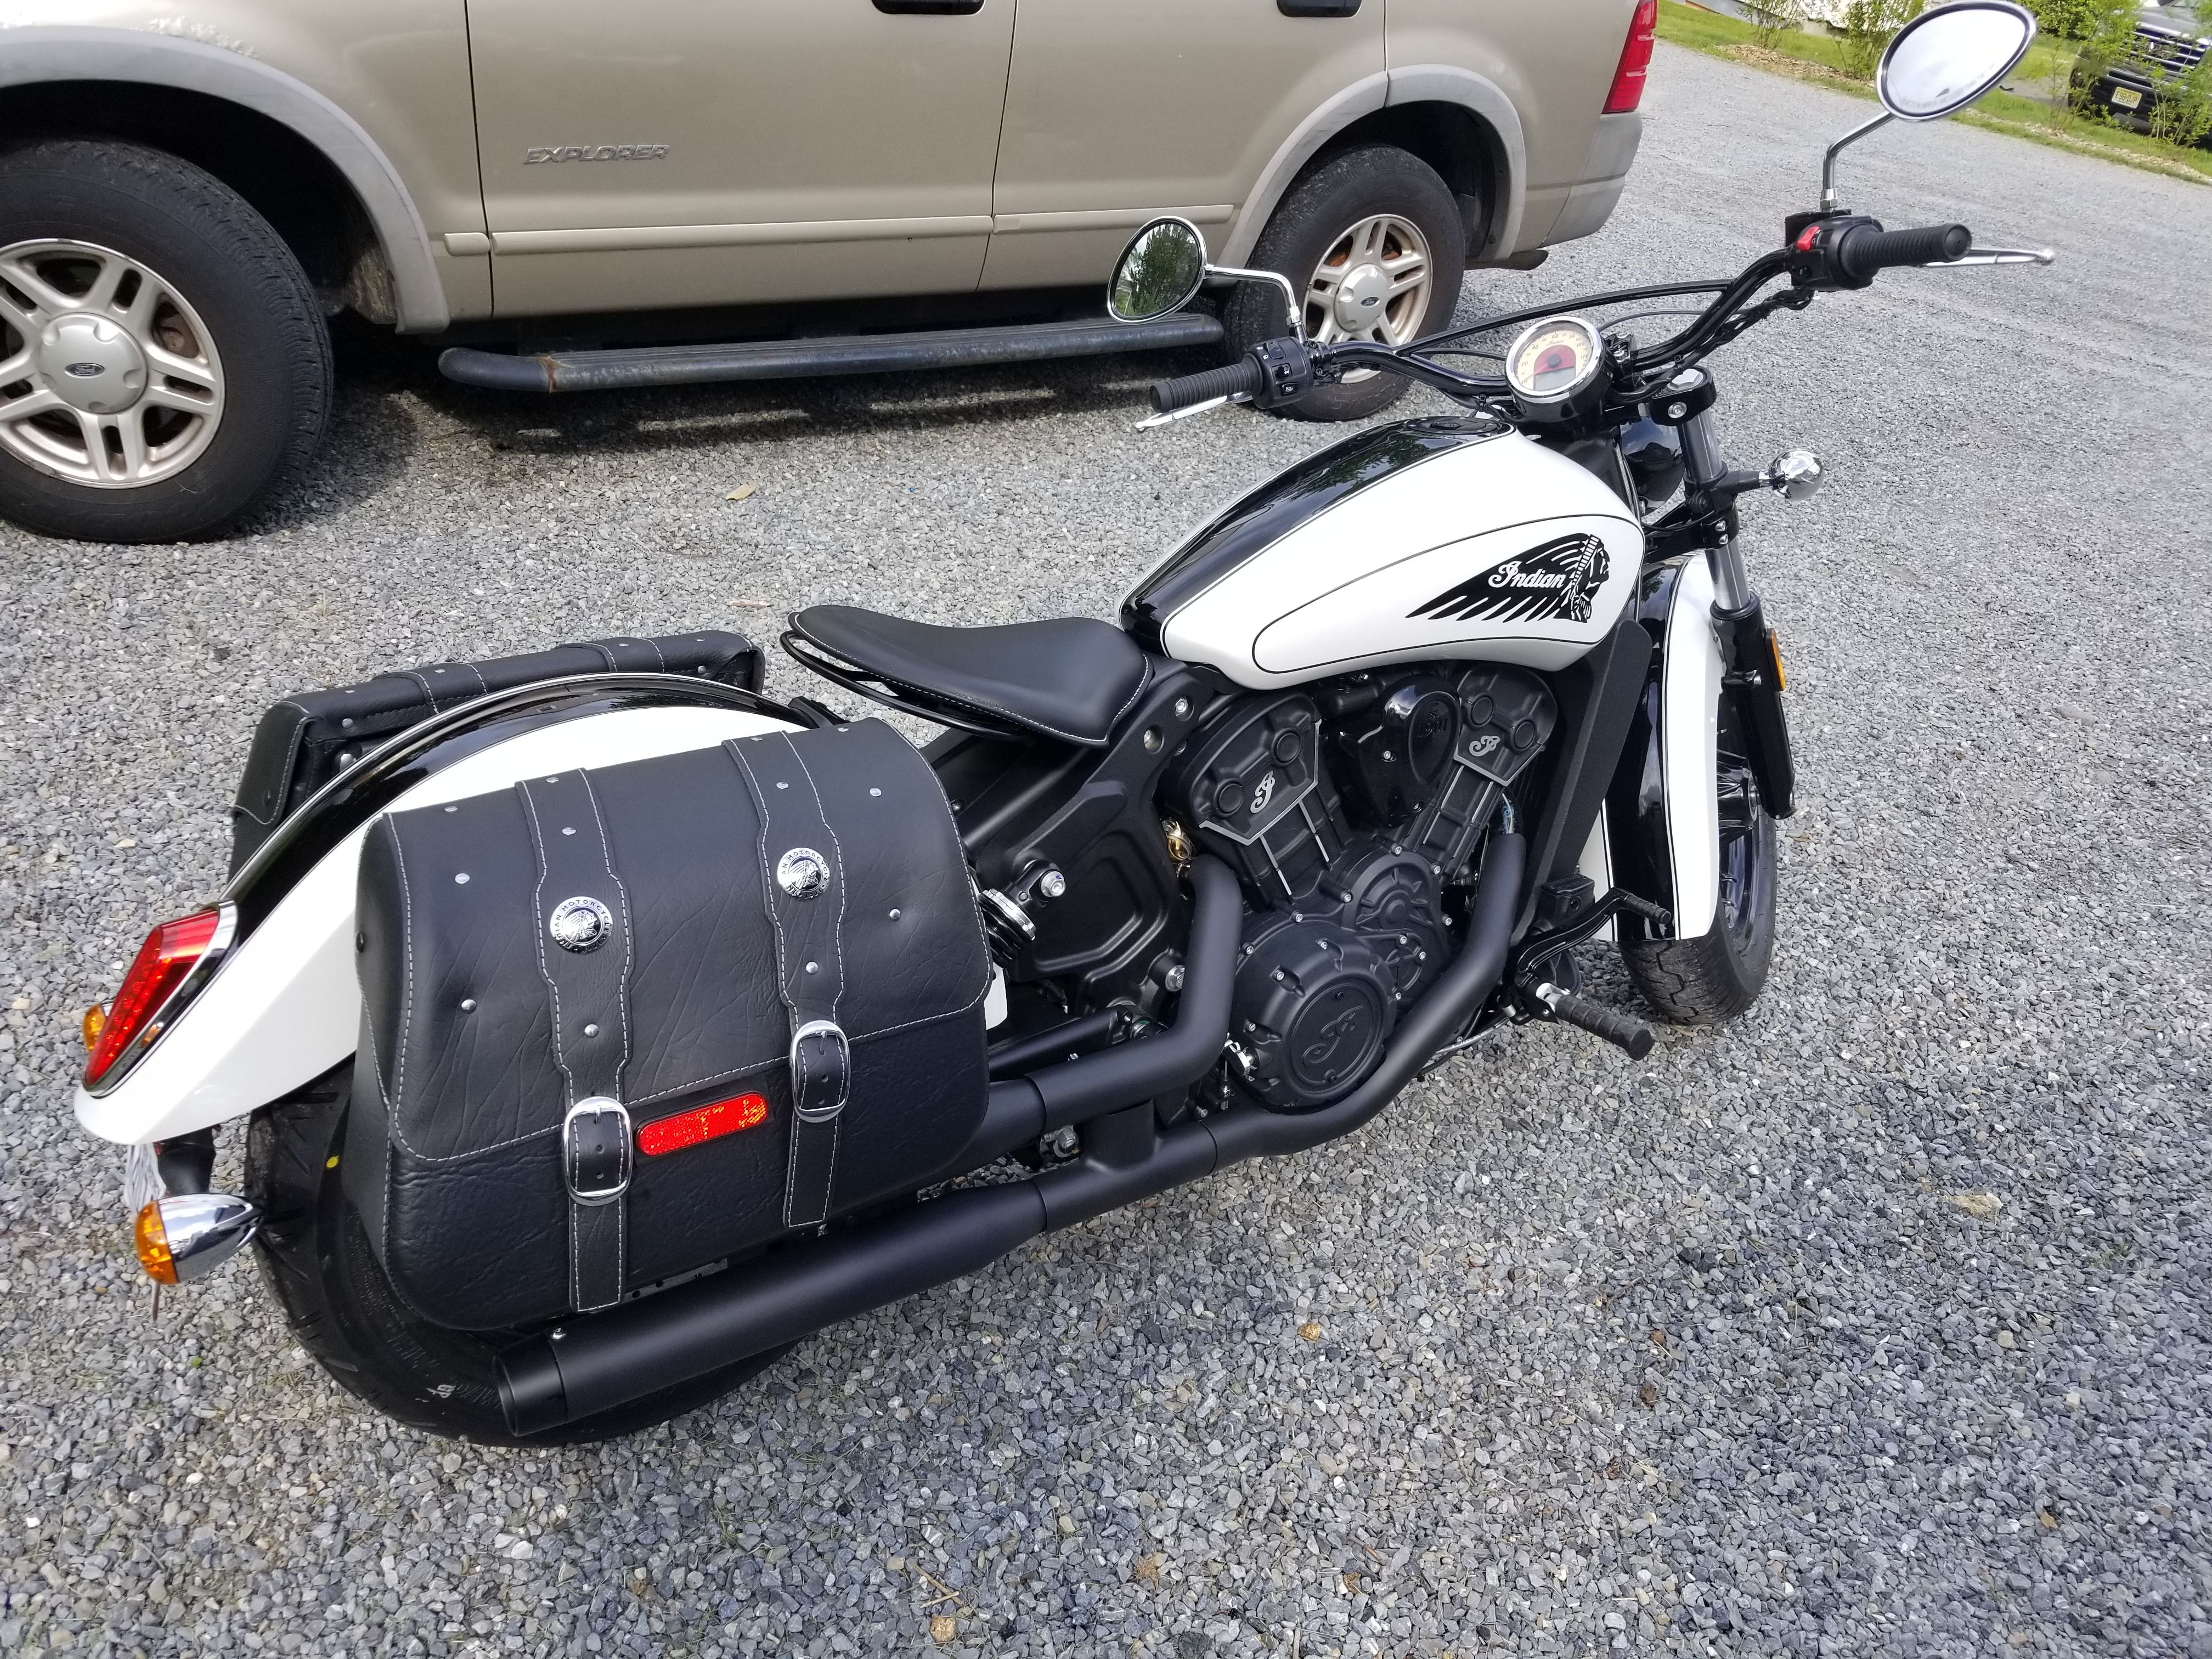 Indian Scout Sixty Indian Scout Sixty Indian Motorcycle Indian Scout